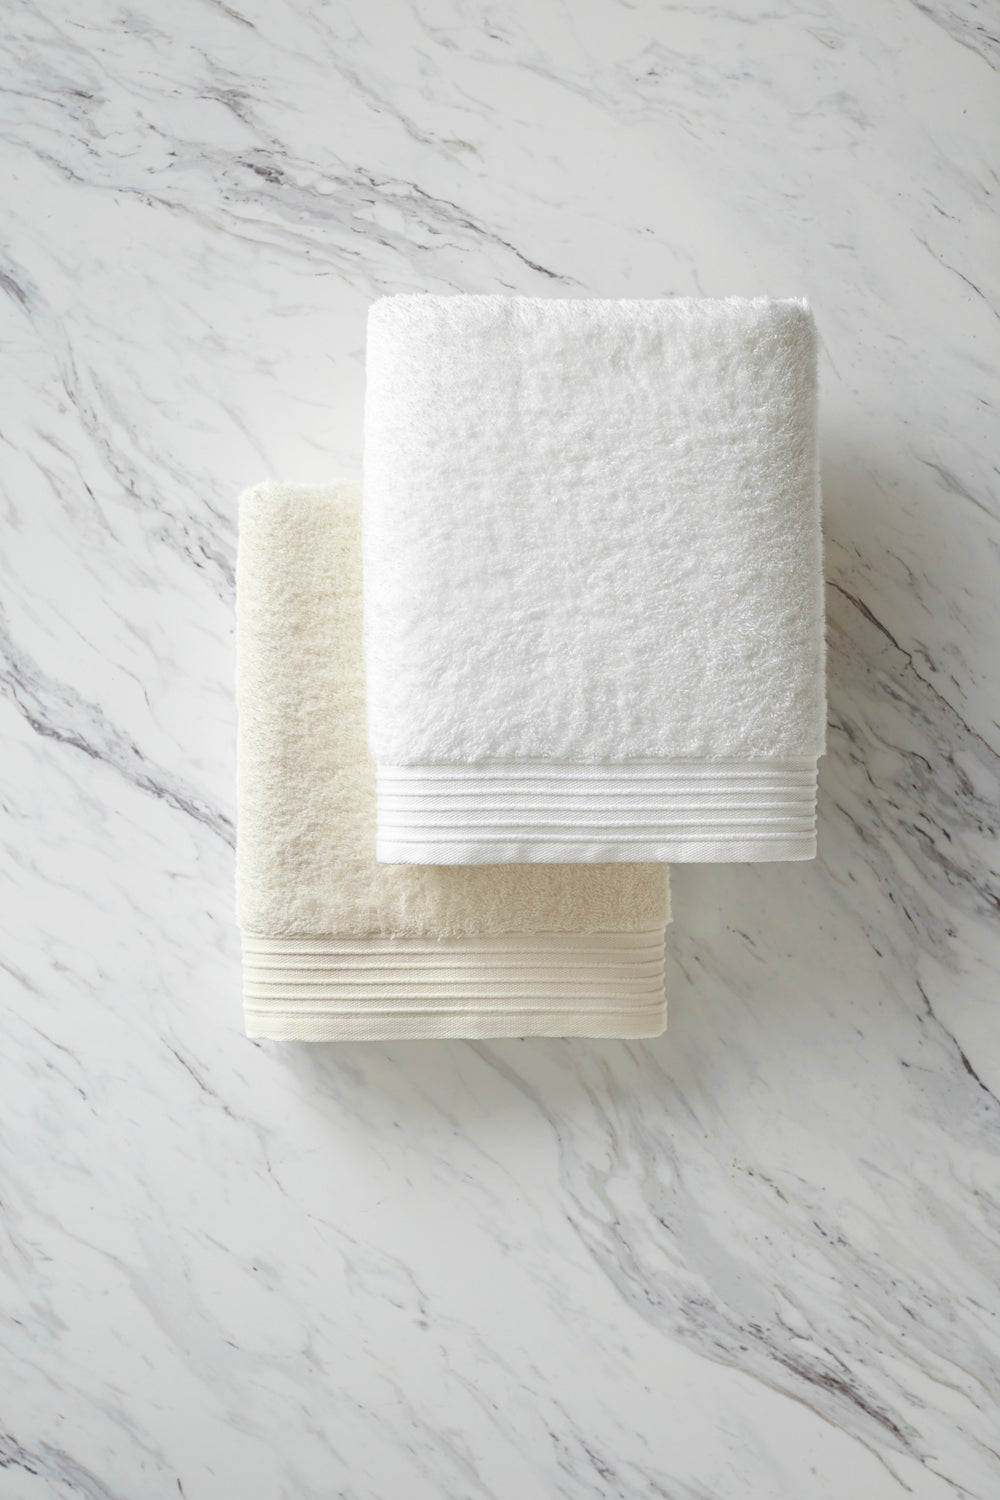 Minimalist folded Bamboo towels in white and ivory on a white marble background